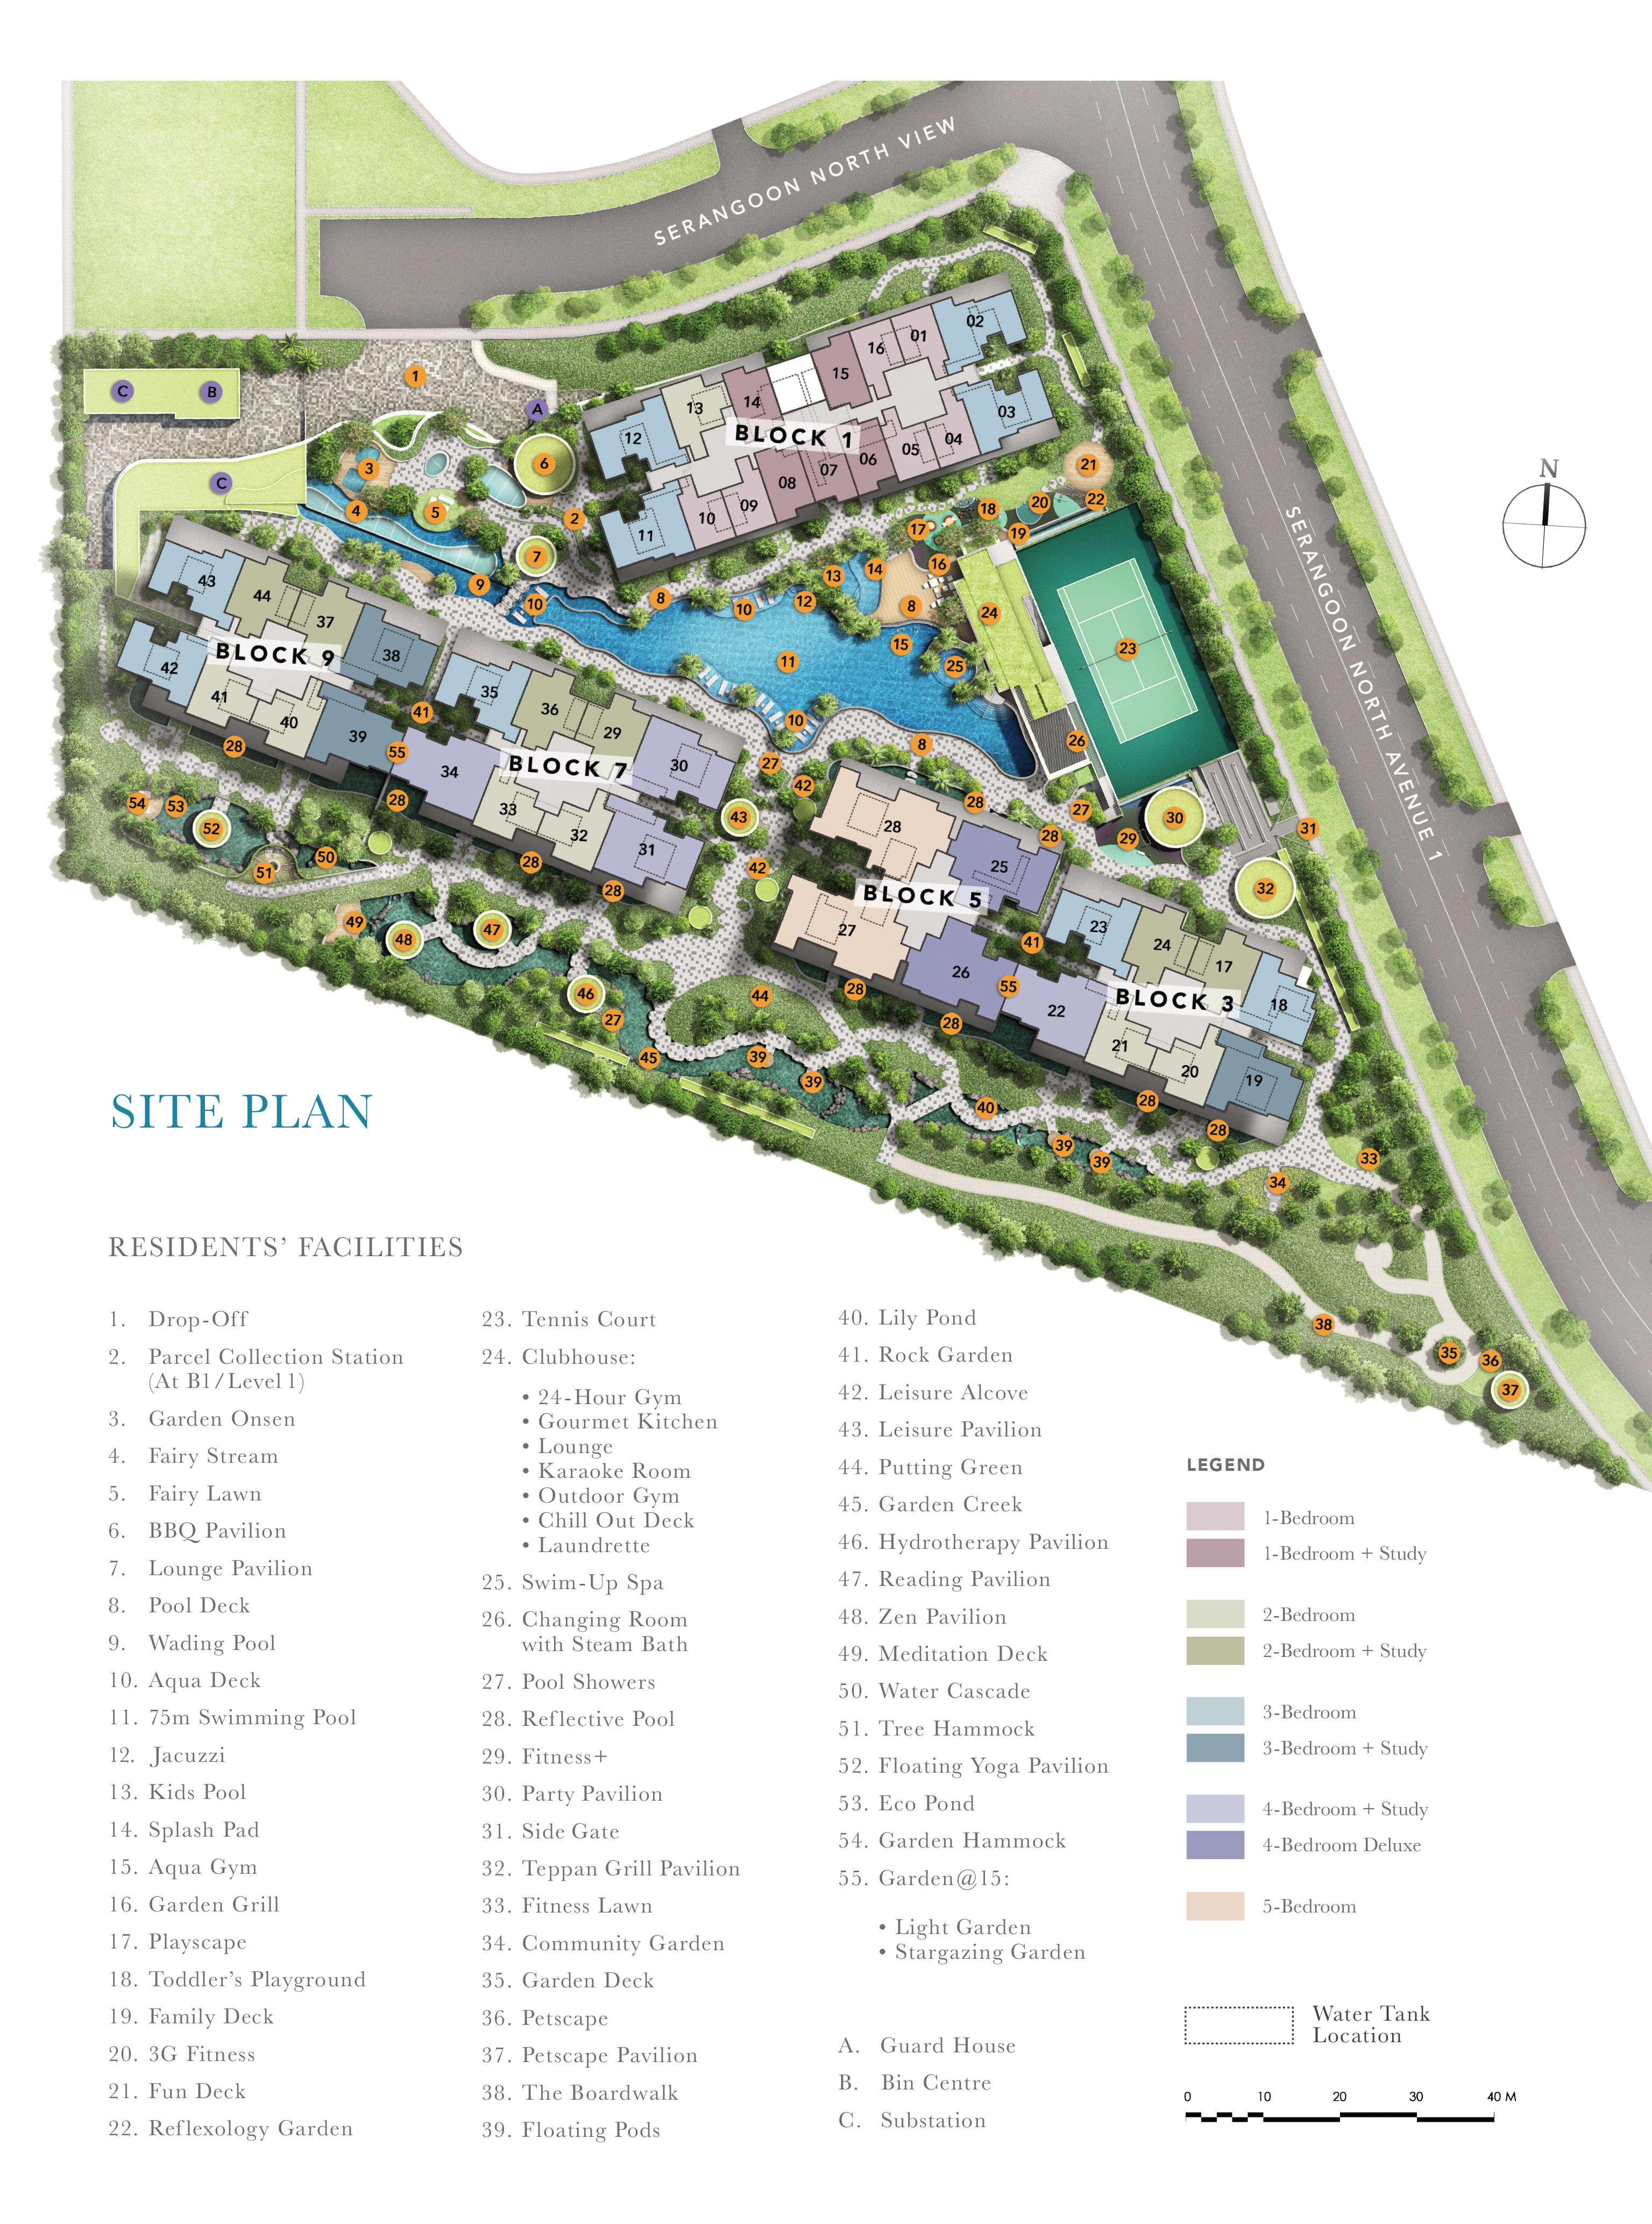 Beautiful A Whole Range Of Amenities Is Available At The Garden Residences. Please  See The Below Site Plan. Various Facilities Including A Swimming Pool,  Indoor Gym, ...